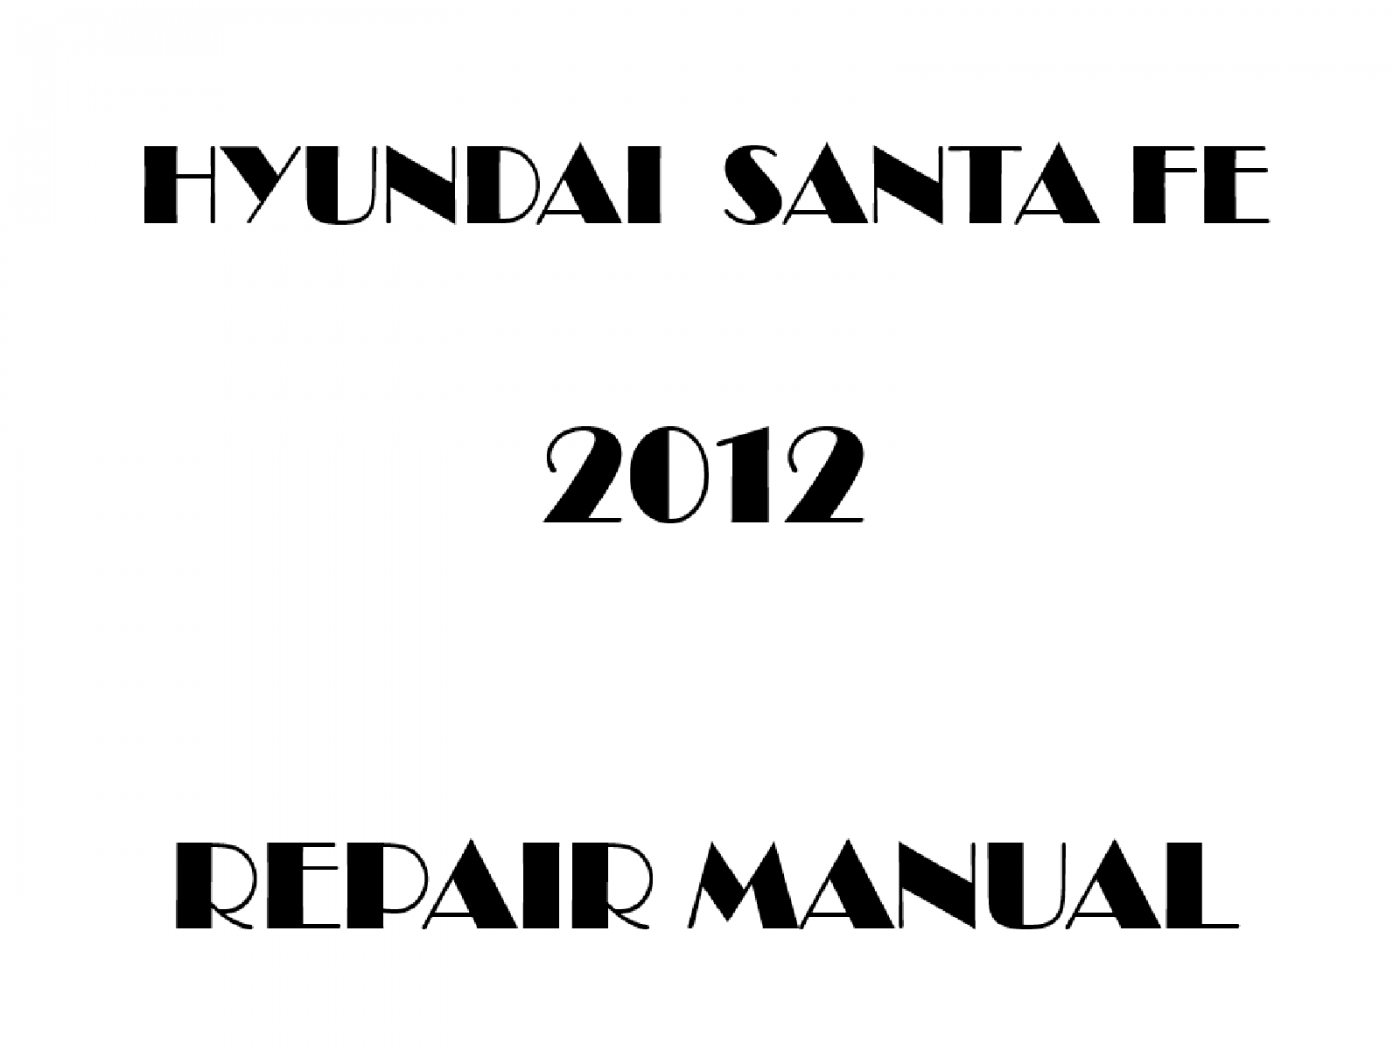 2012 Hyundai Santa Fe repair manual